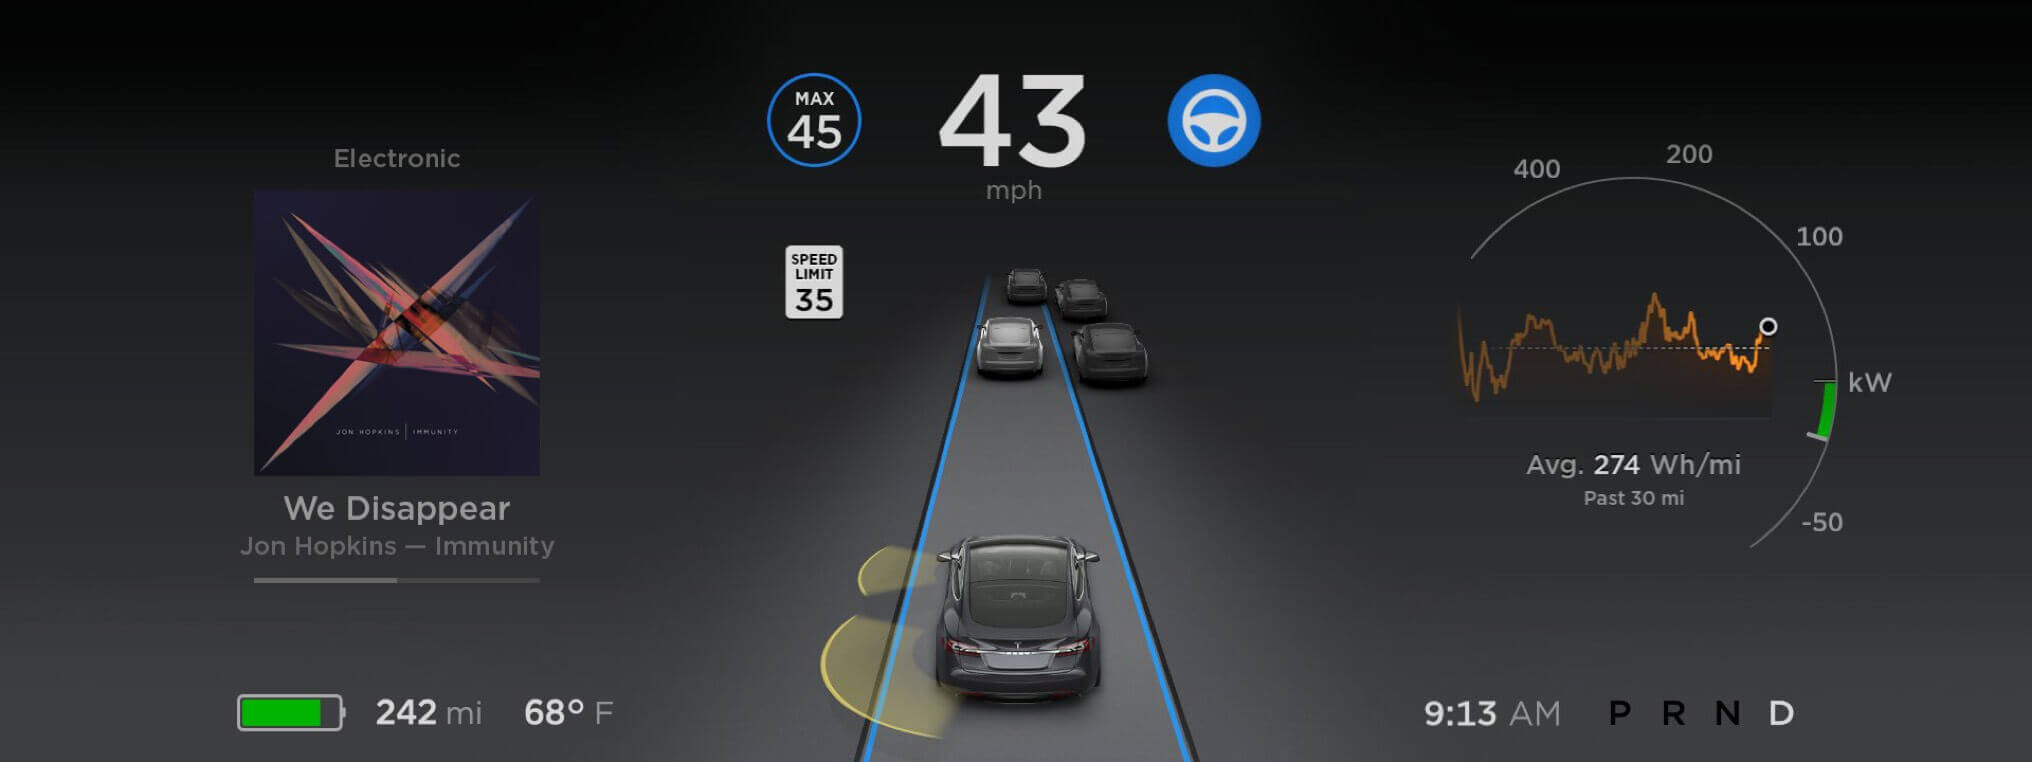 Tesla software 8.0 - Autopilot